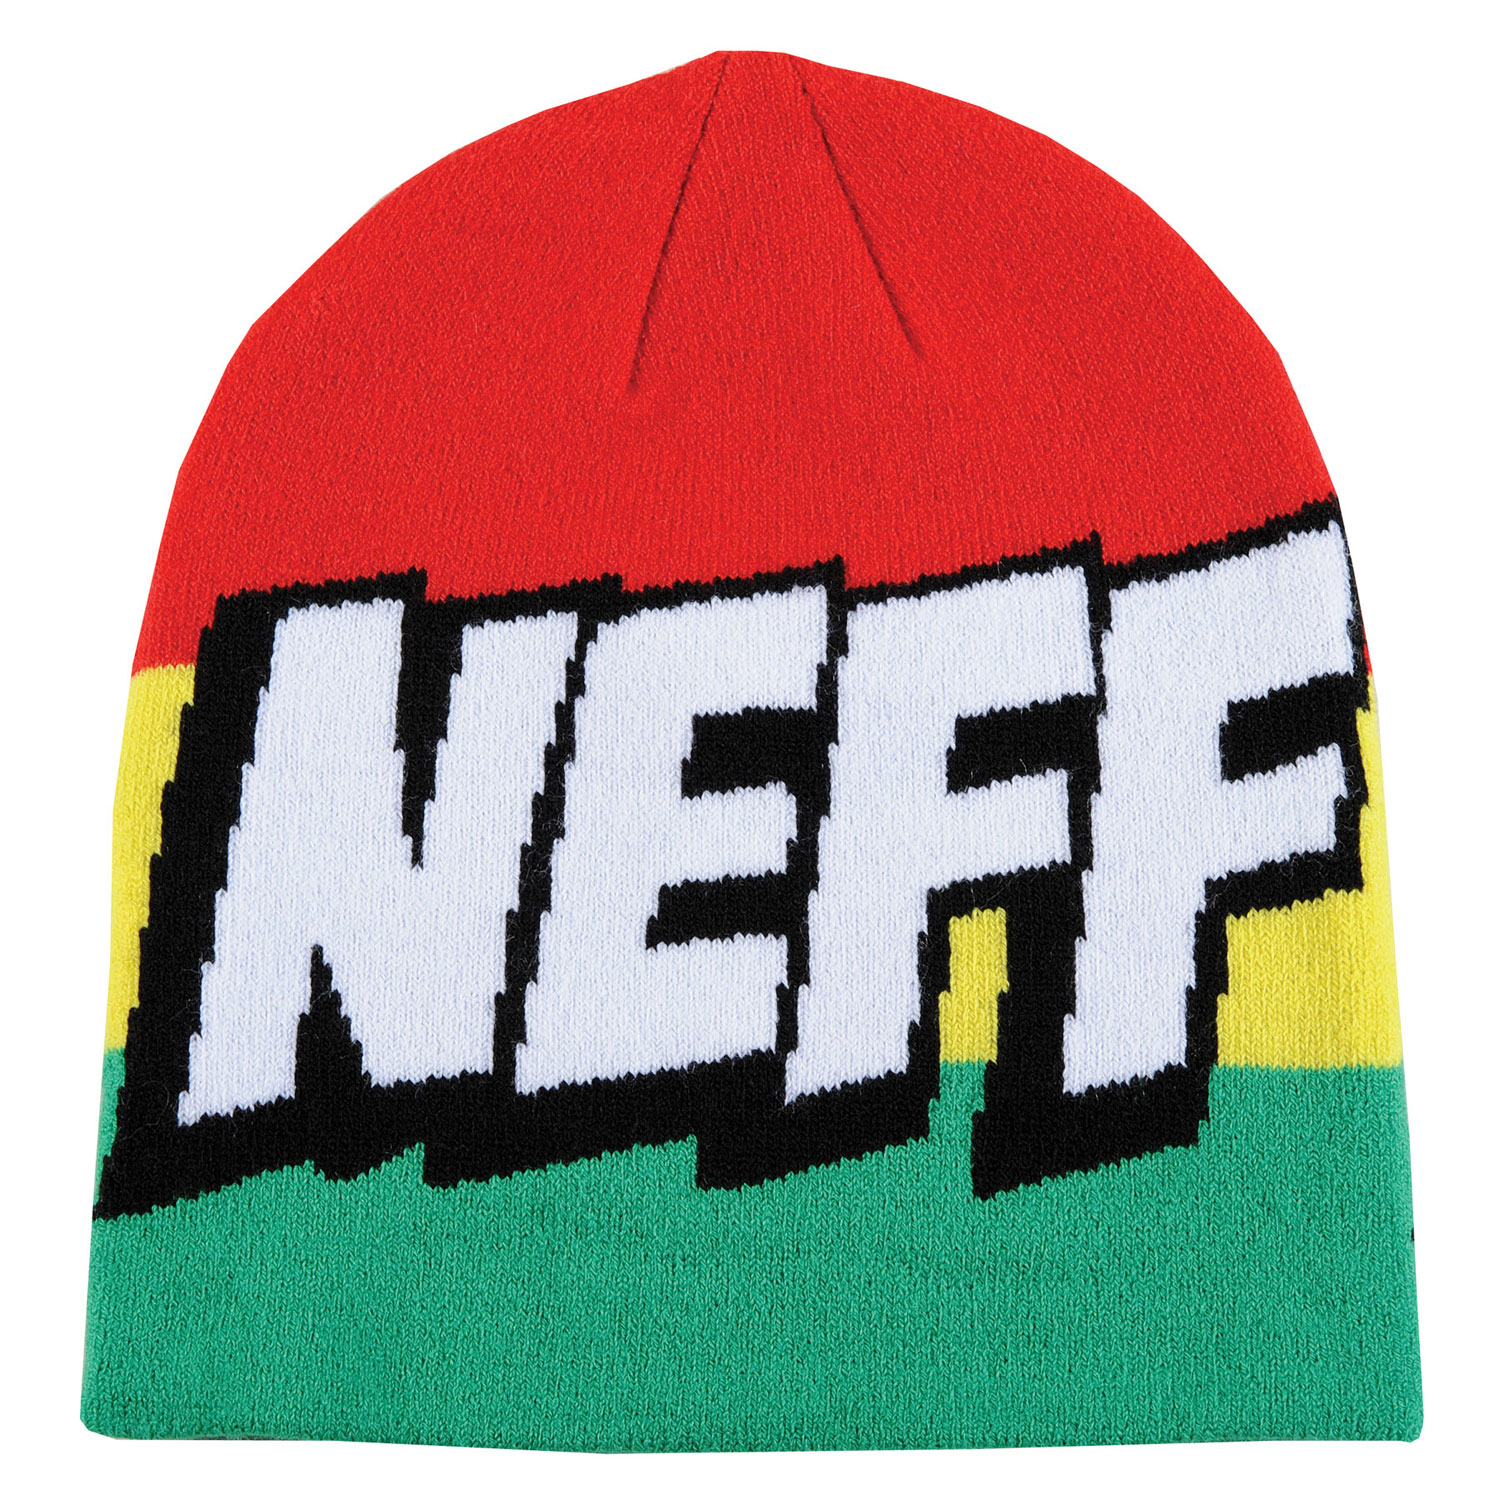 Skateboard Key Features of the Neff Cartoon Beanie: 100% Acrylic - $22.00